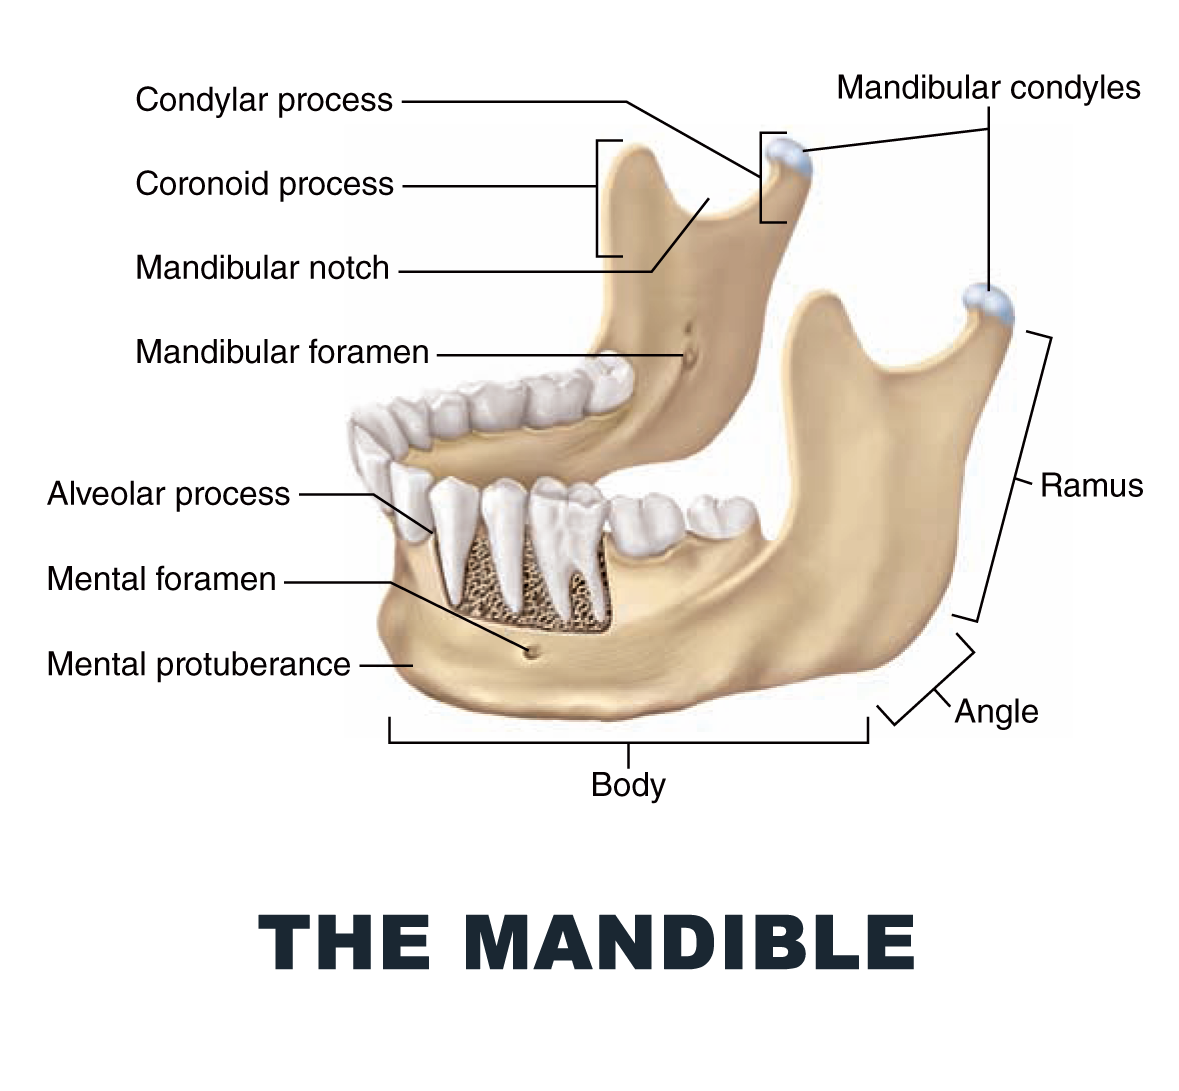 The Mandible - #anatomy images illustrations #anatomy images ...